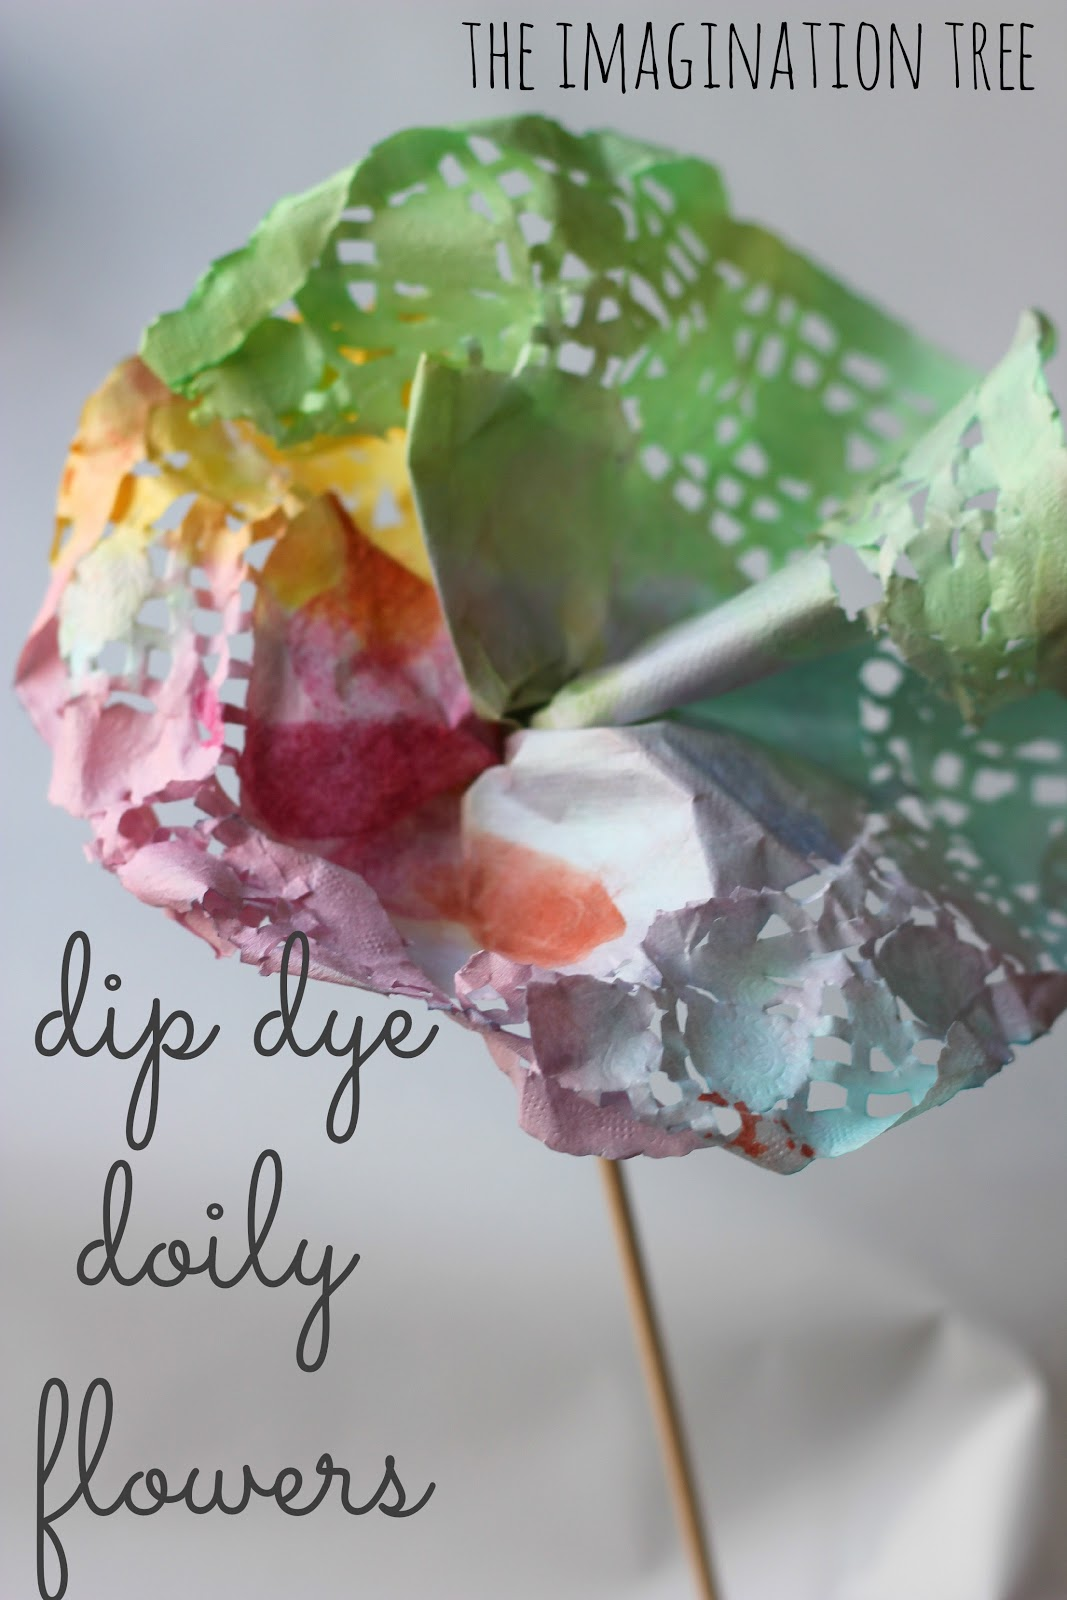 Dip Dye Doily Flowers The Imagination Tree